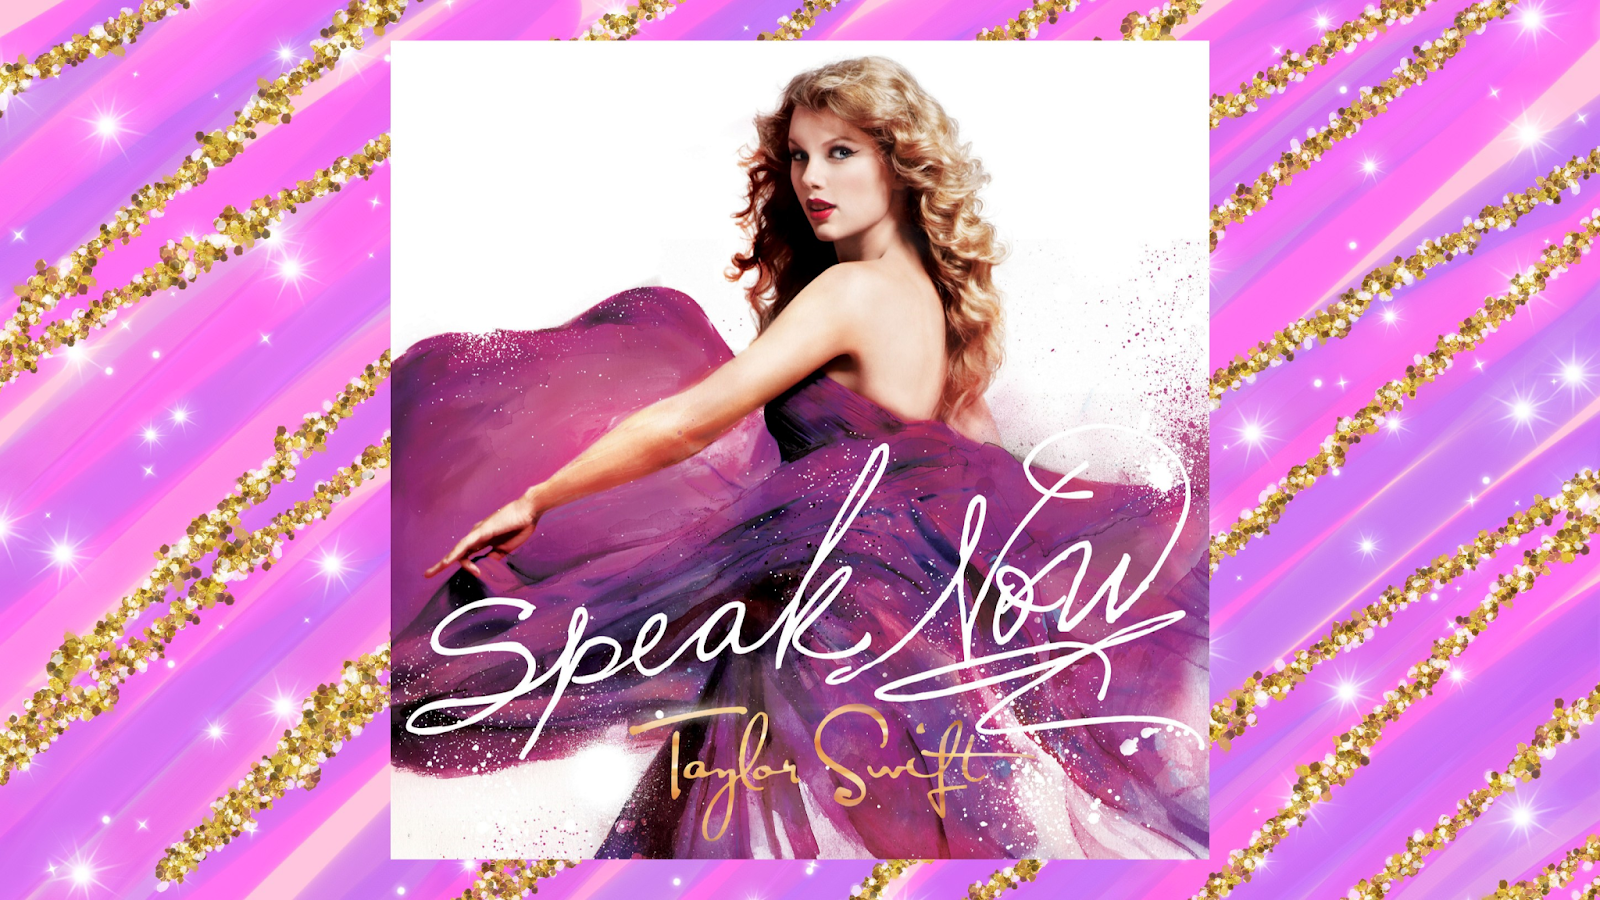 Taylor Swift Speak Now Album Art